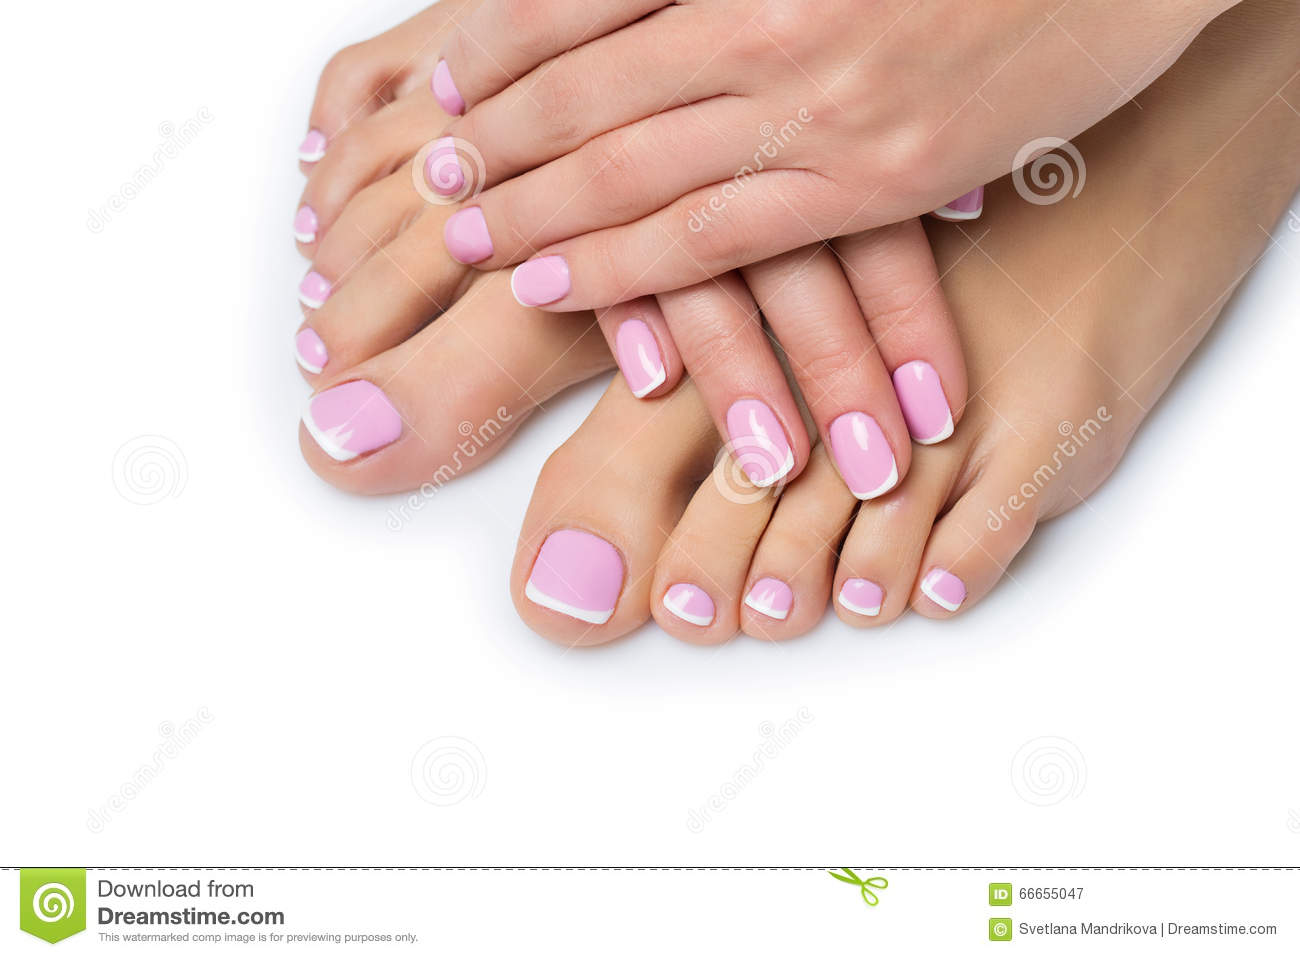 Foot Pedicure French Manicure Nails Stock Photos - 252 Images